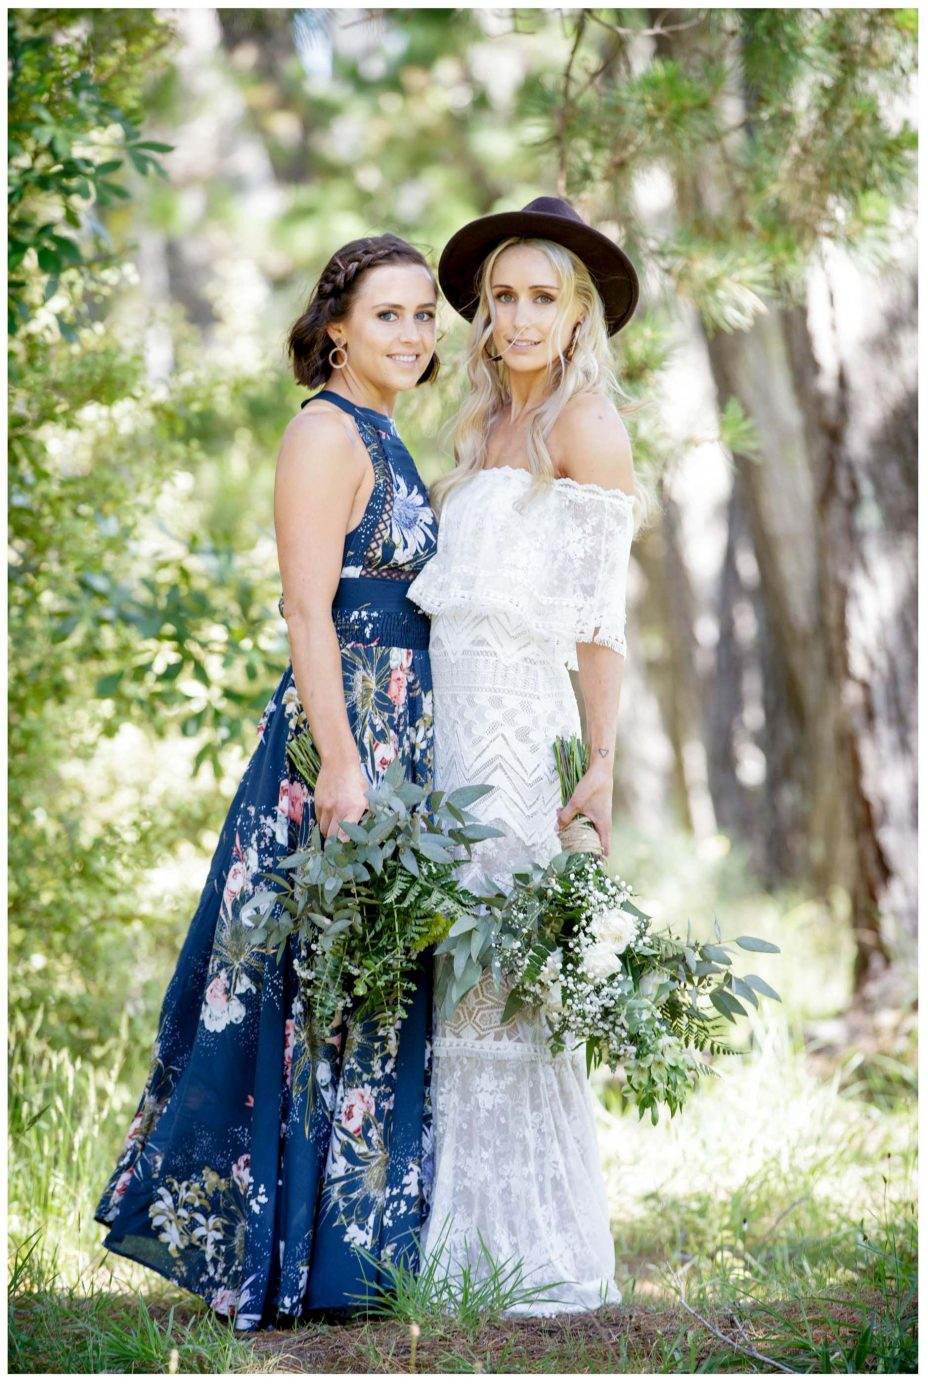 Aussie Bride and maid of honor in blue floral patterned dress look back to camera, Murawai Beech wedding photo